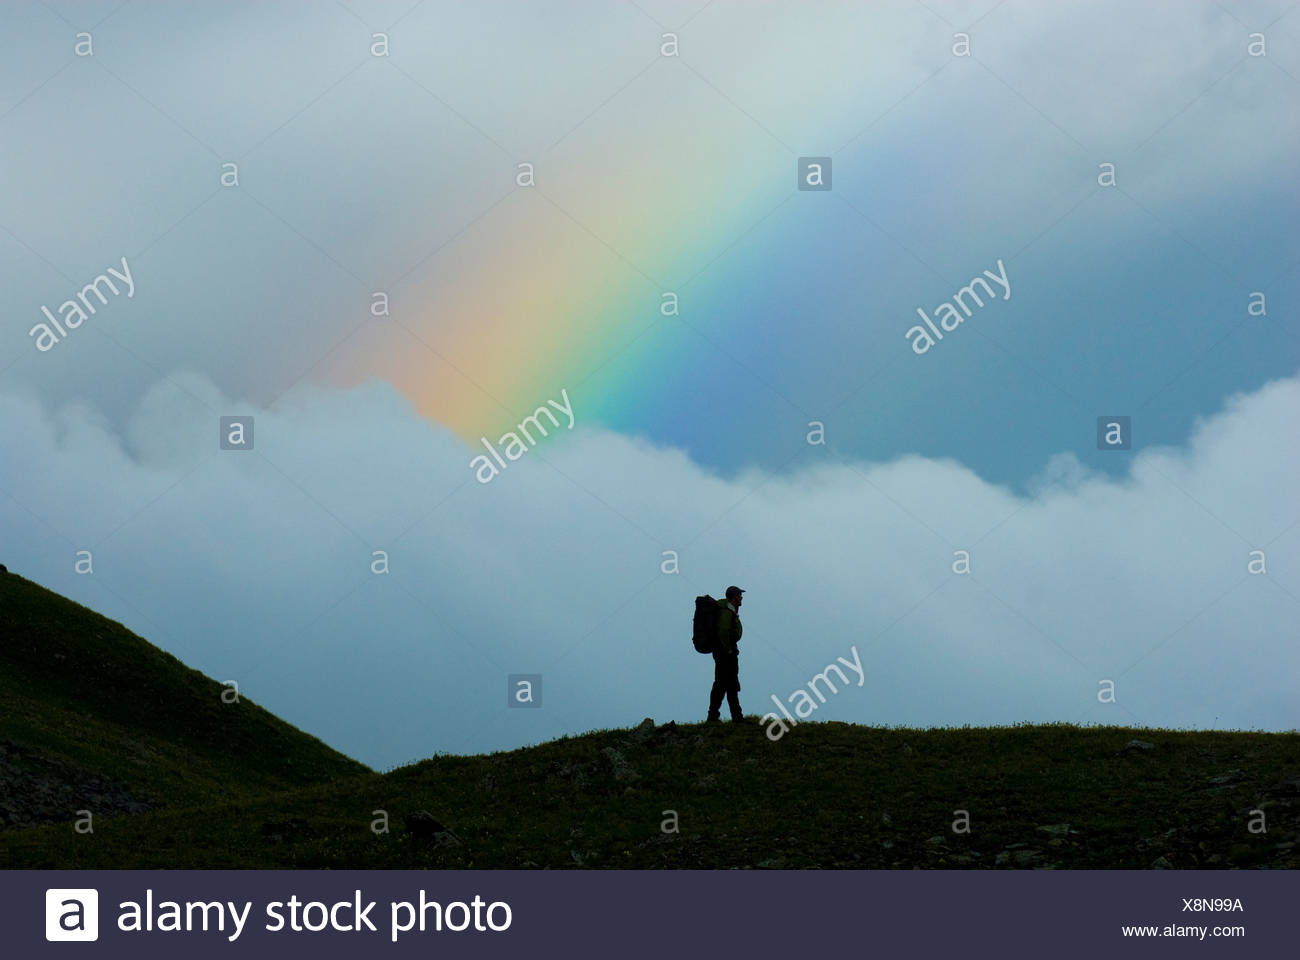 Man standing on ridge in front of rainbow, San Juan National Forest, Colorado (silhouette). - Stock Image